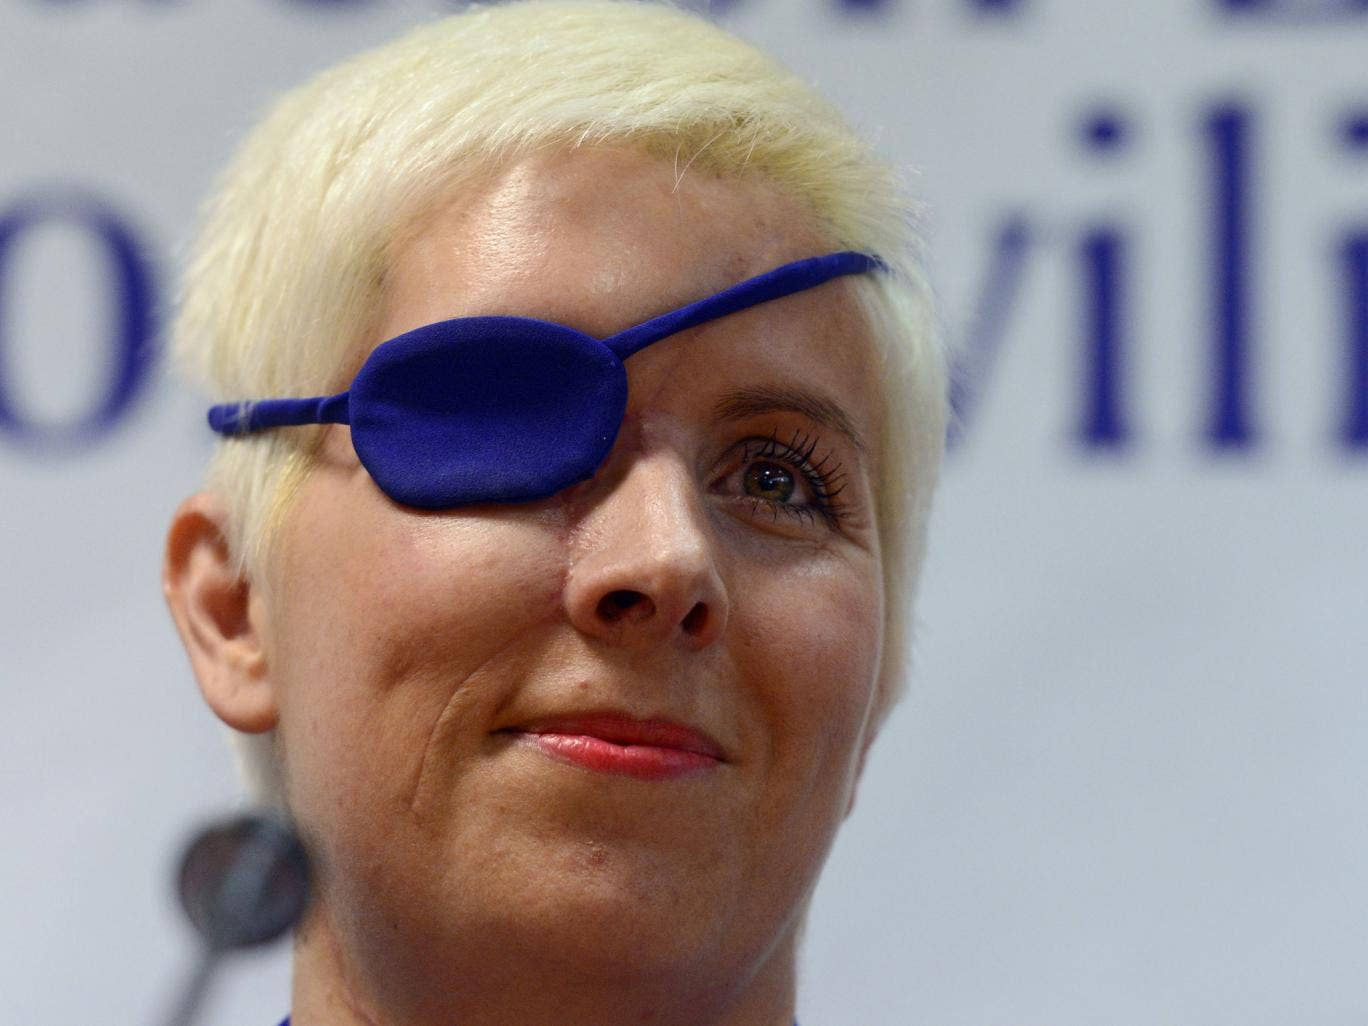 Maria de Villota has died aged 33 just a year after being involved in a horrific crash where she lost her right eye